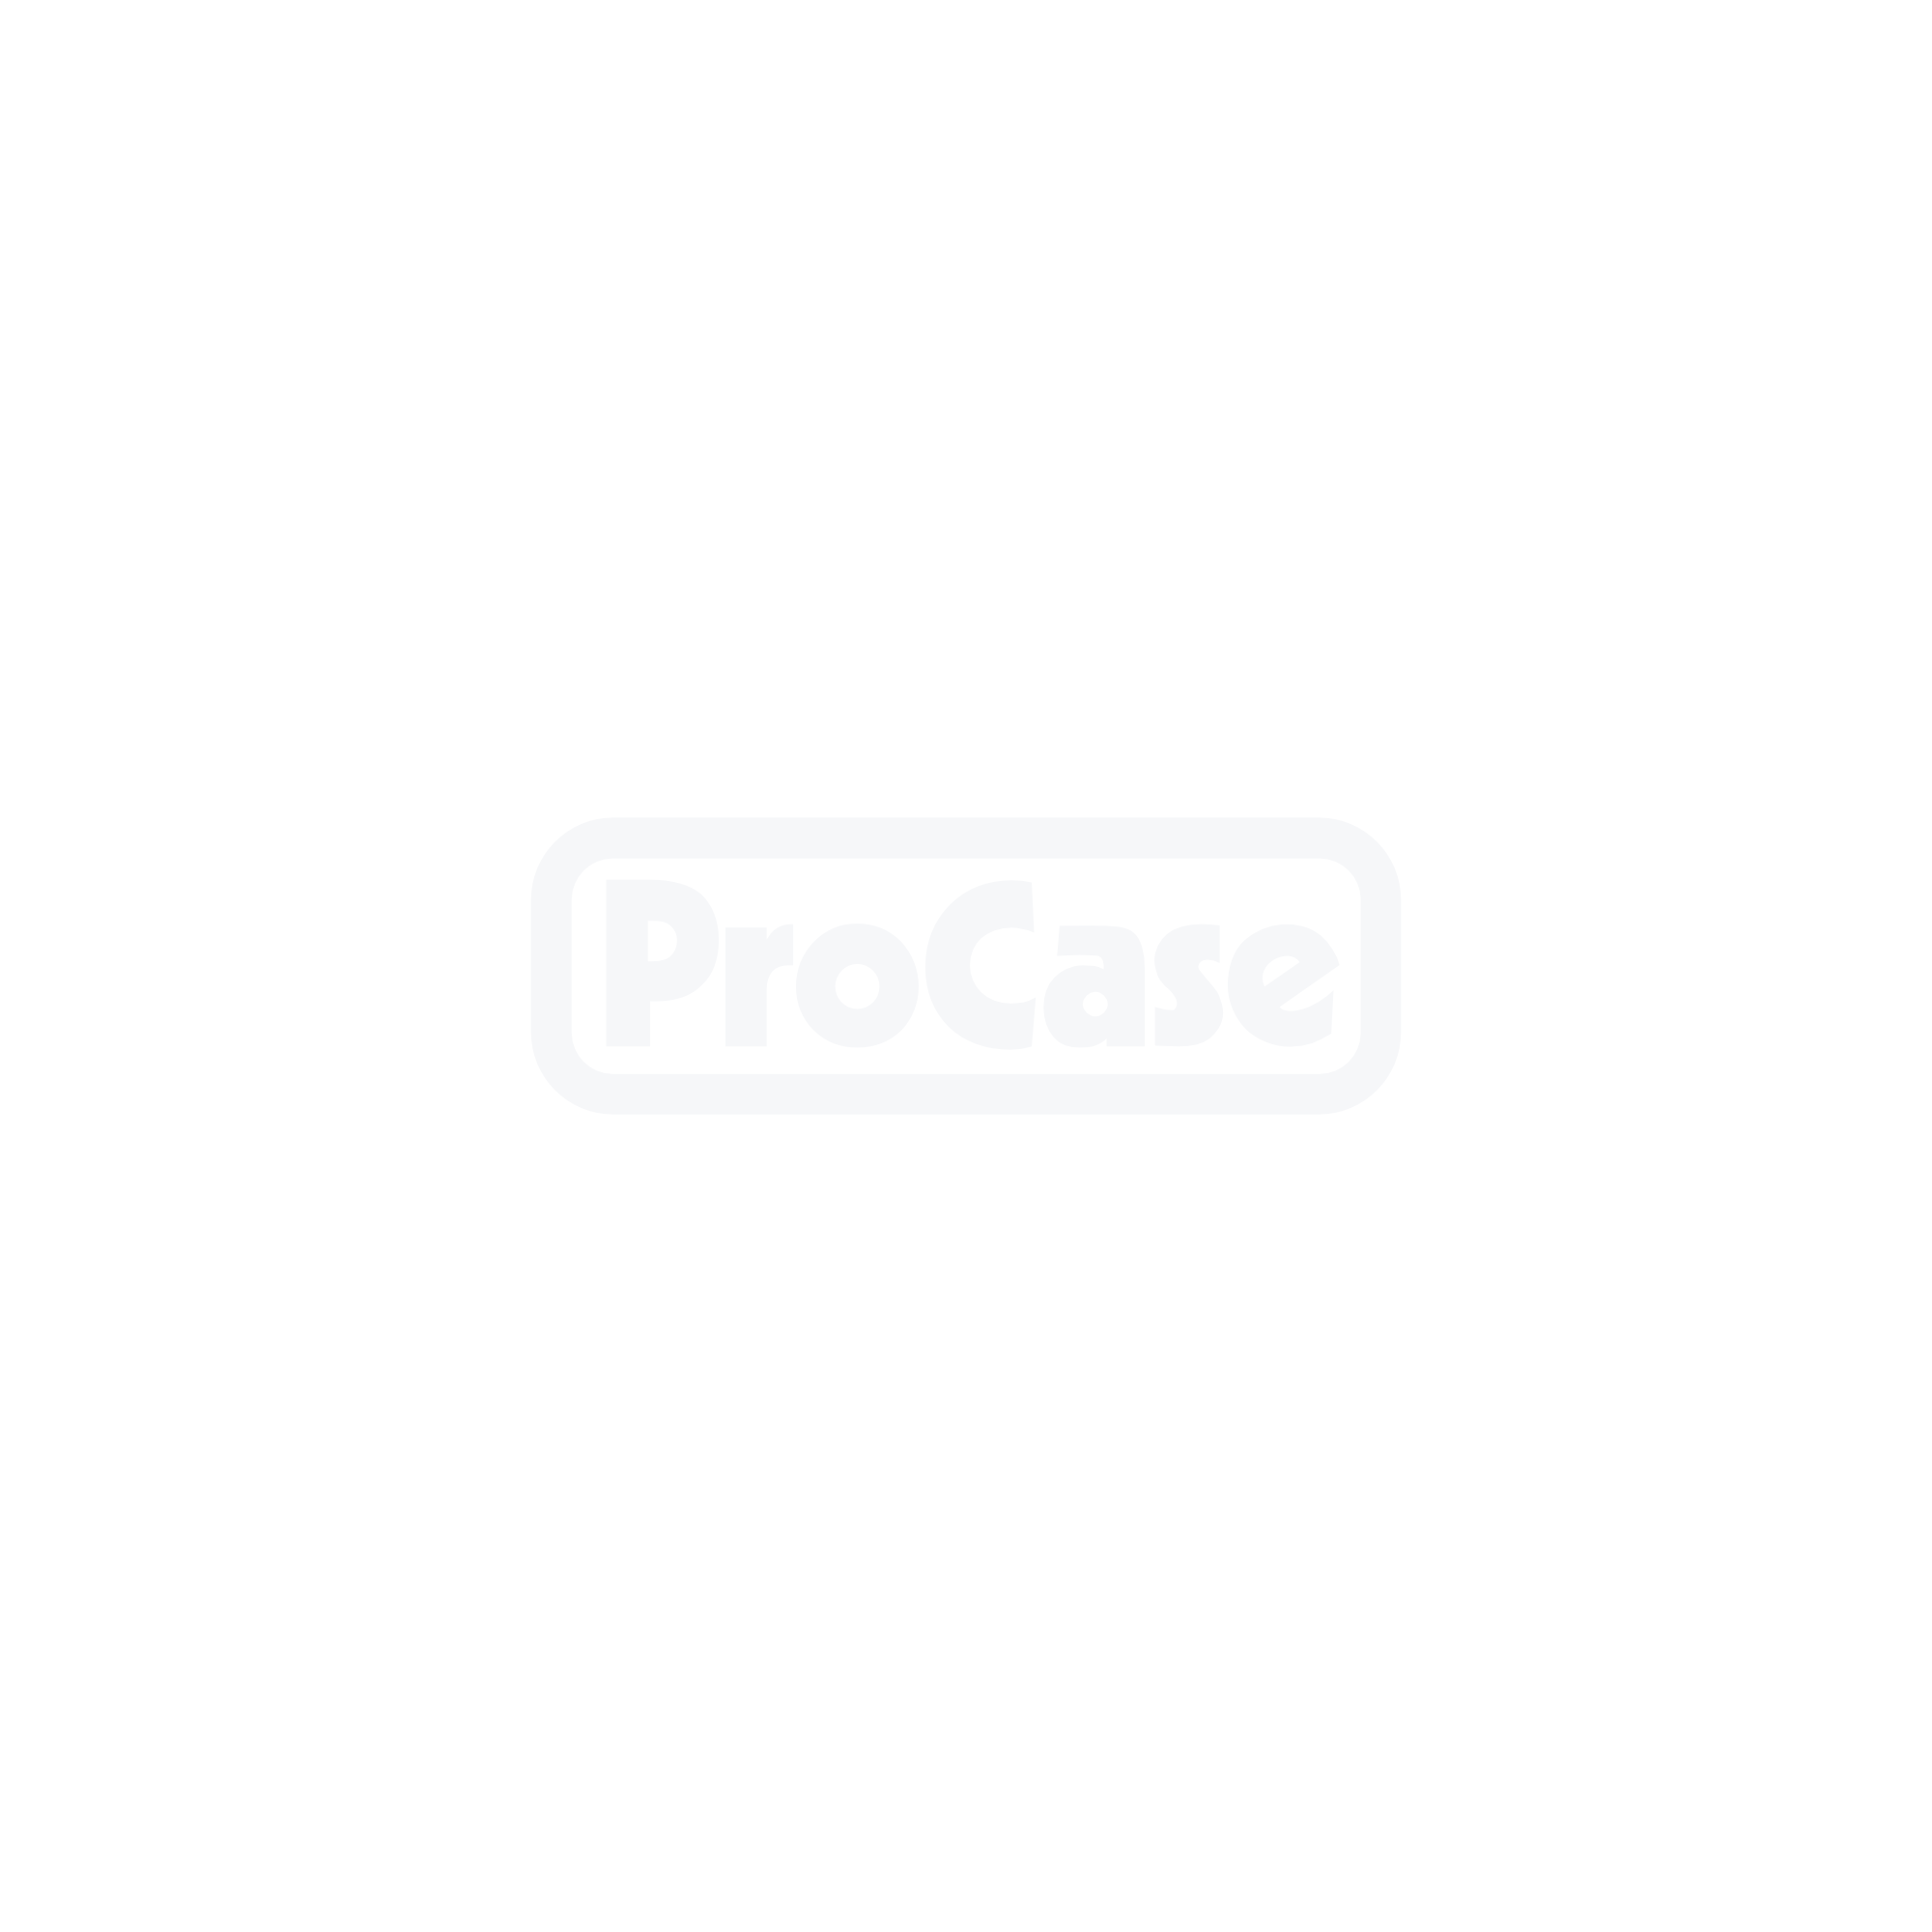 Flightcase für 8 ARRI 650 PLUS